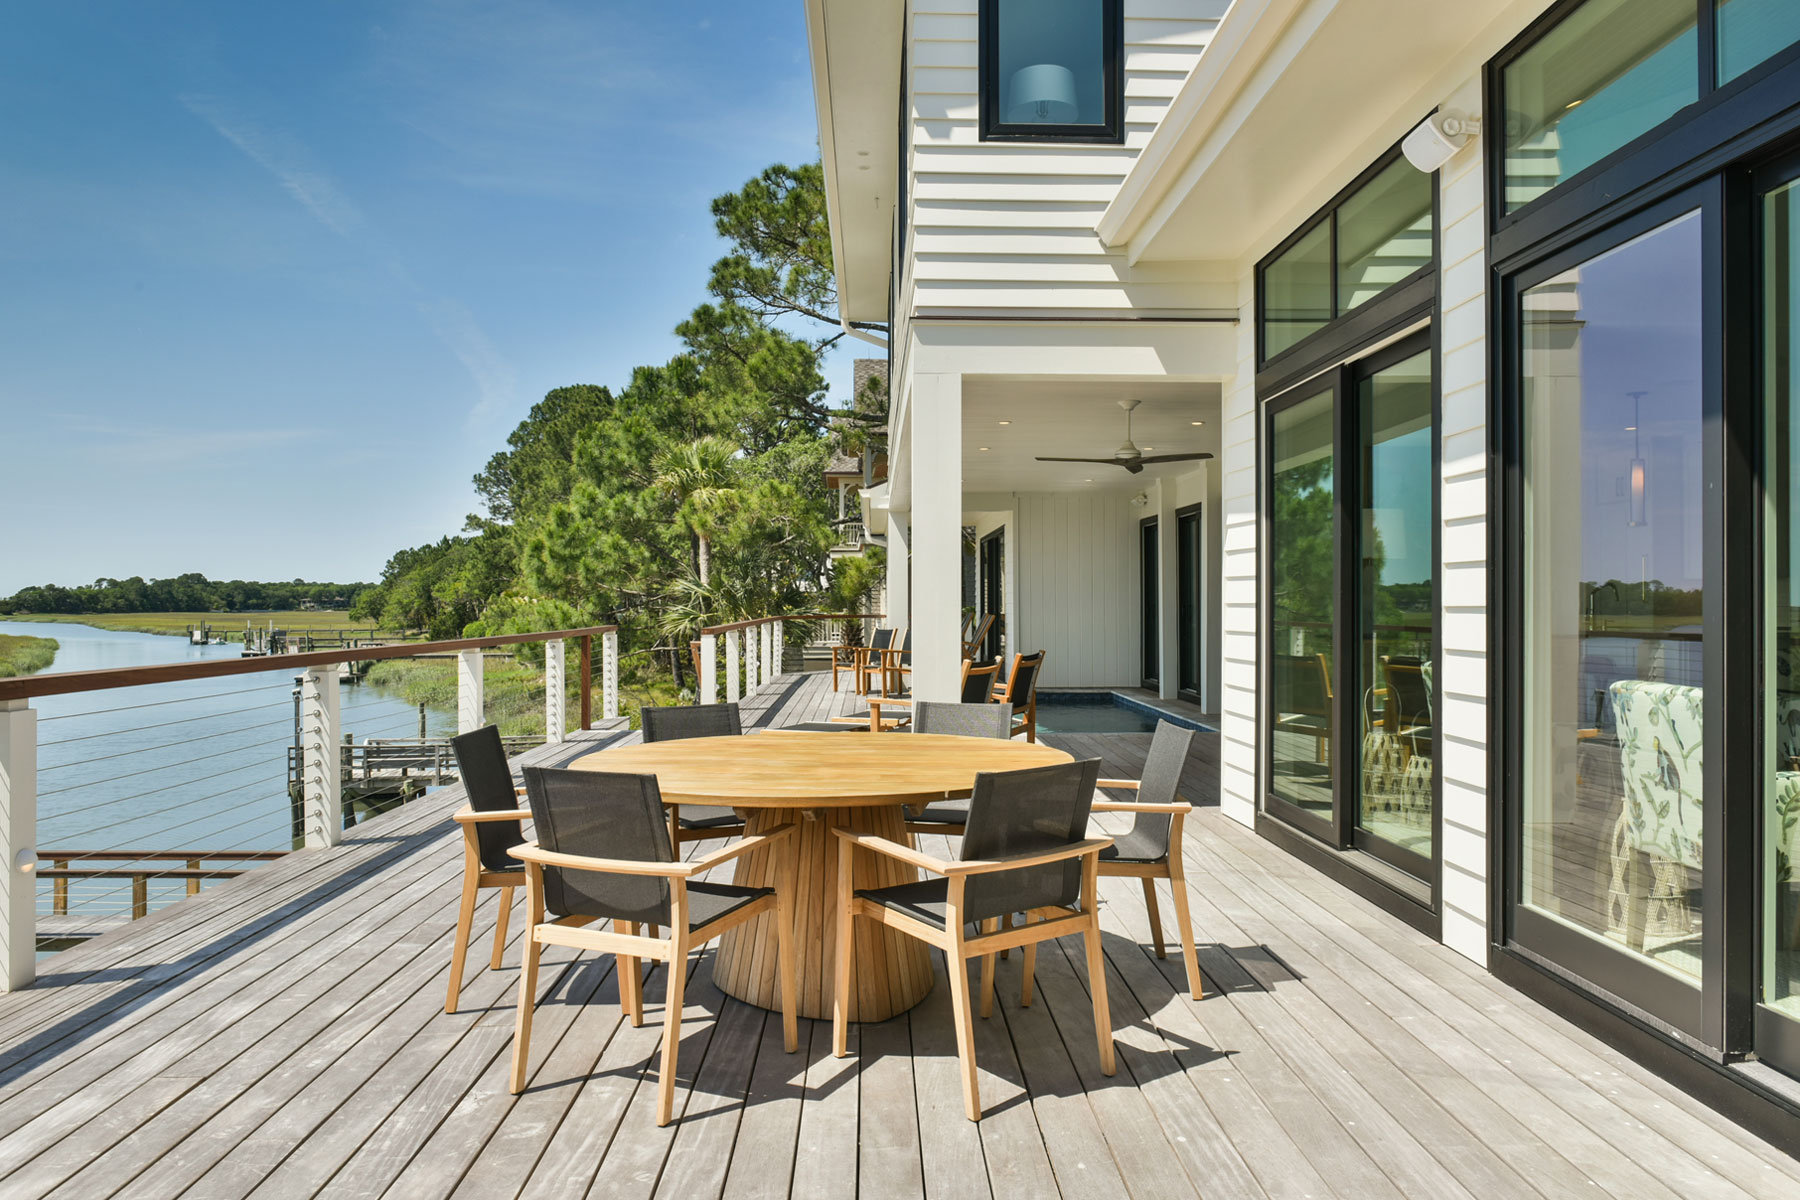 Outdoor dining and entertaining on elevated pool deck